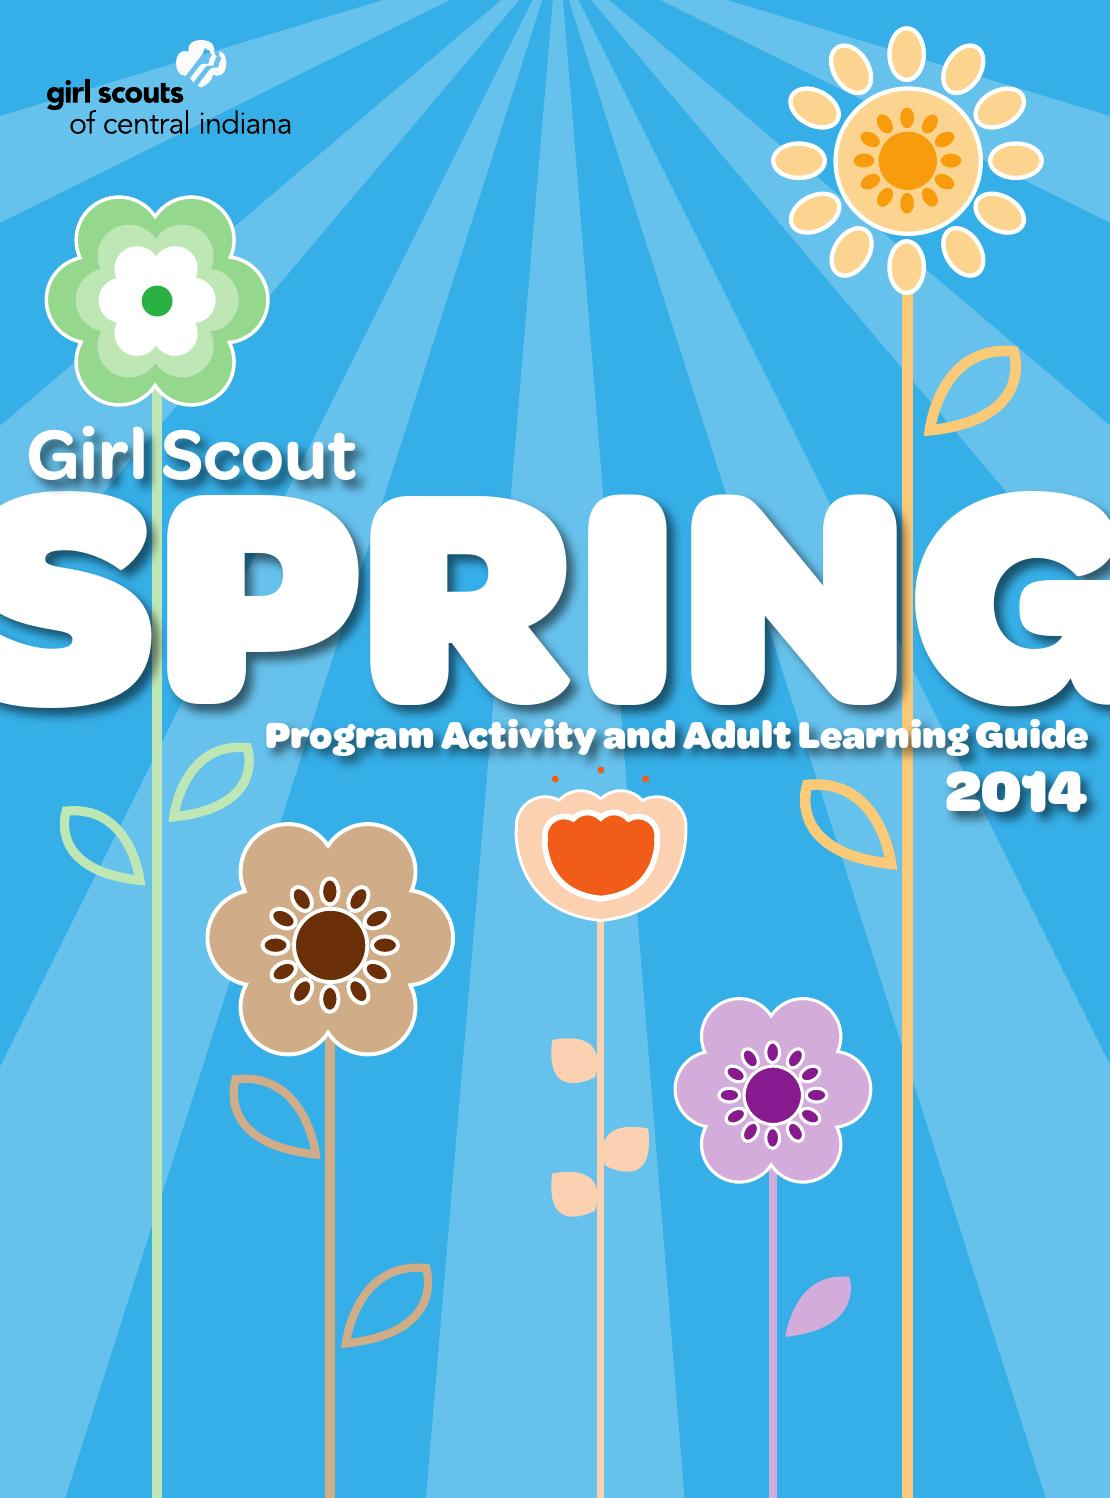 spring program guide by girl scouts of central indiana   issuu